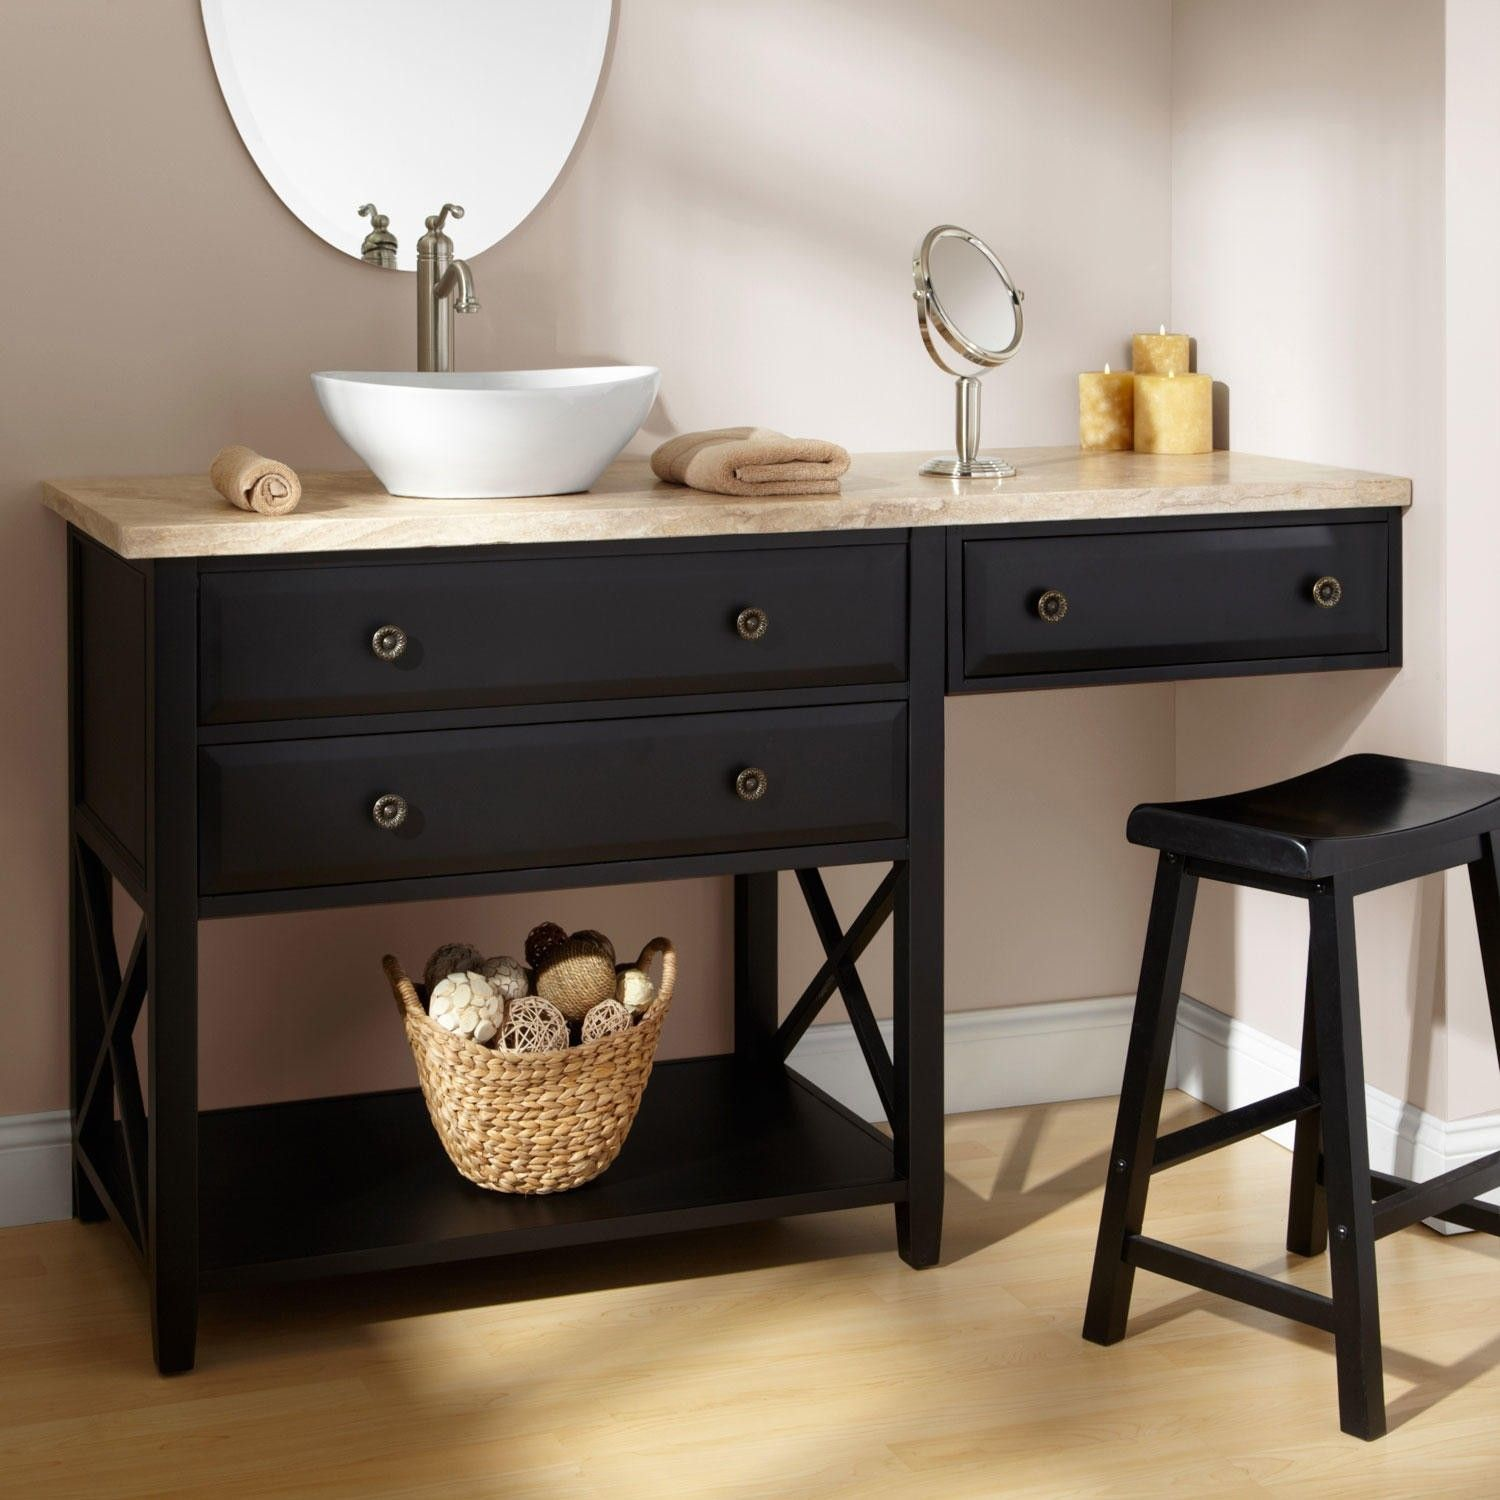 Bathroom Sink And Makeup Vanity Combo You Are Able To Really Give It A Thought To Purchase Small Bathroom Vanities Single Sink Bathroom Vanity Vanity Combos [ 1500 x 1500 Pixel ]